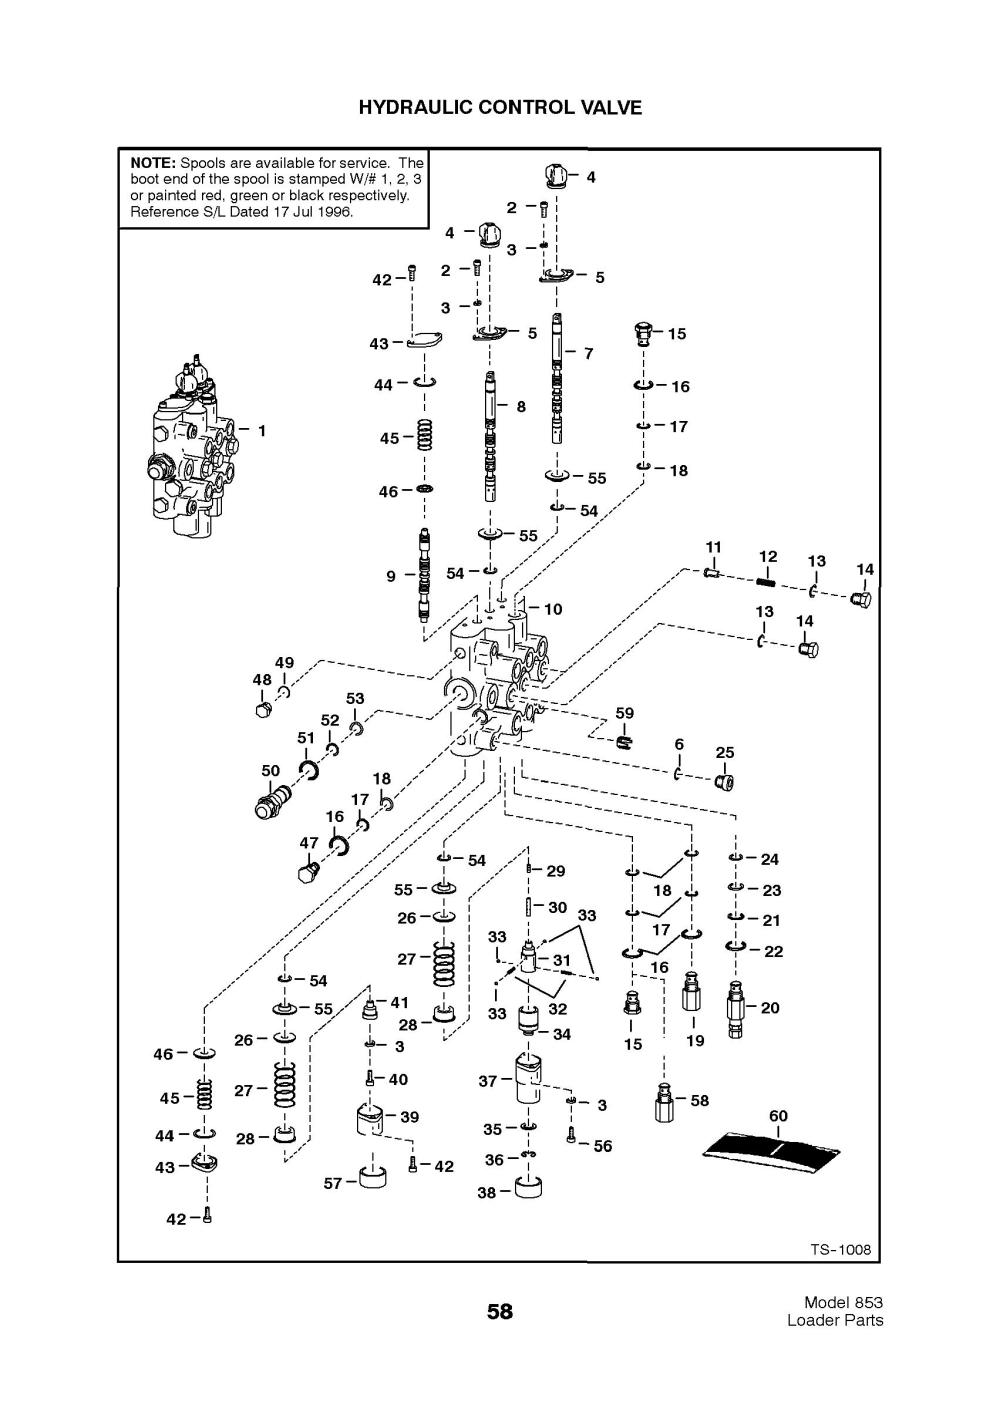 medium resolution of bobcat 753 hydraulic control valve diagram wiring diagram todays rh 18 10 10 1813weddingbarn com bobcat skid steer controls diagram bobcat 435 controls